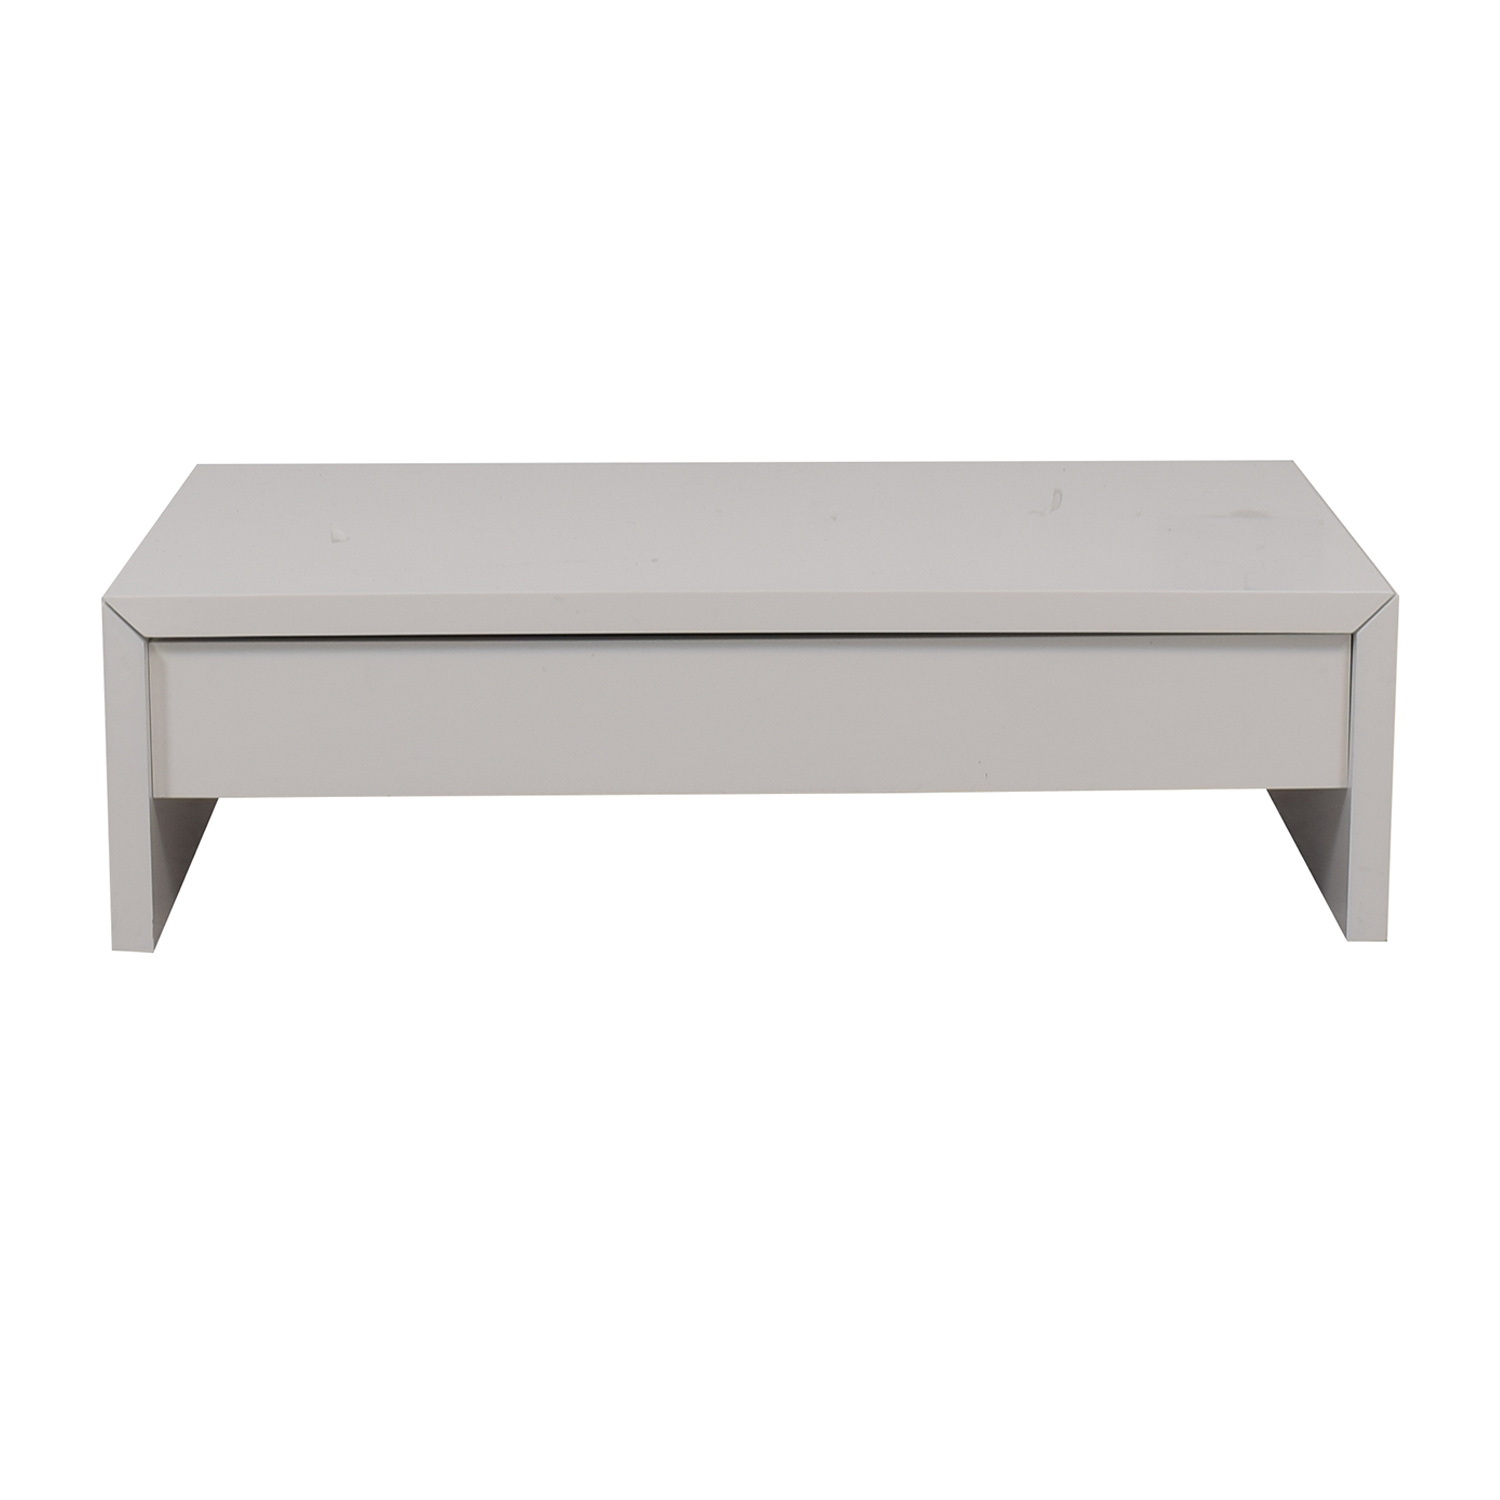 Safavieh Safavieh White Coffee Table with Lift Top Storage nj